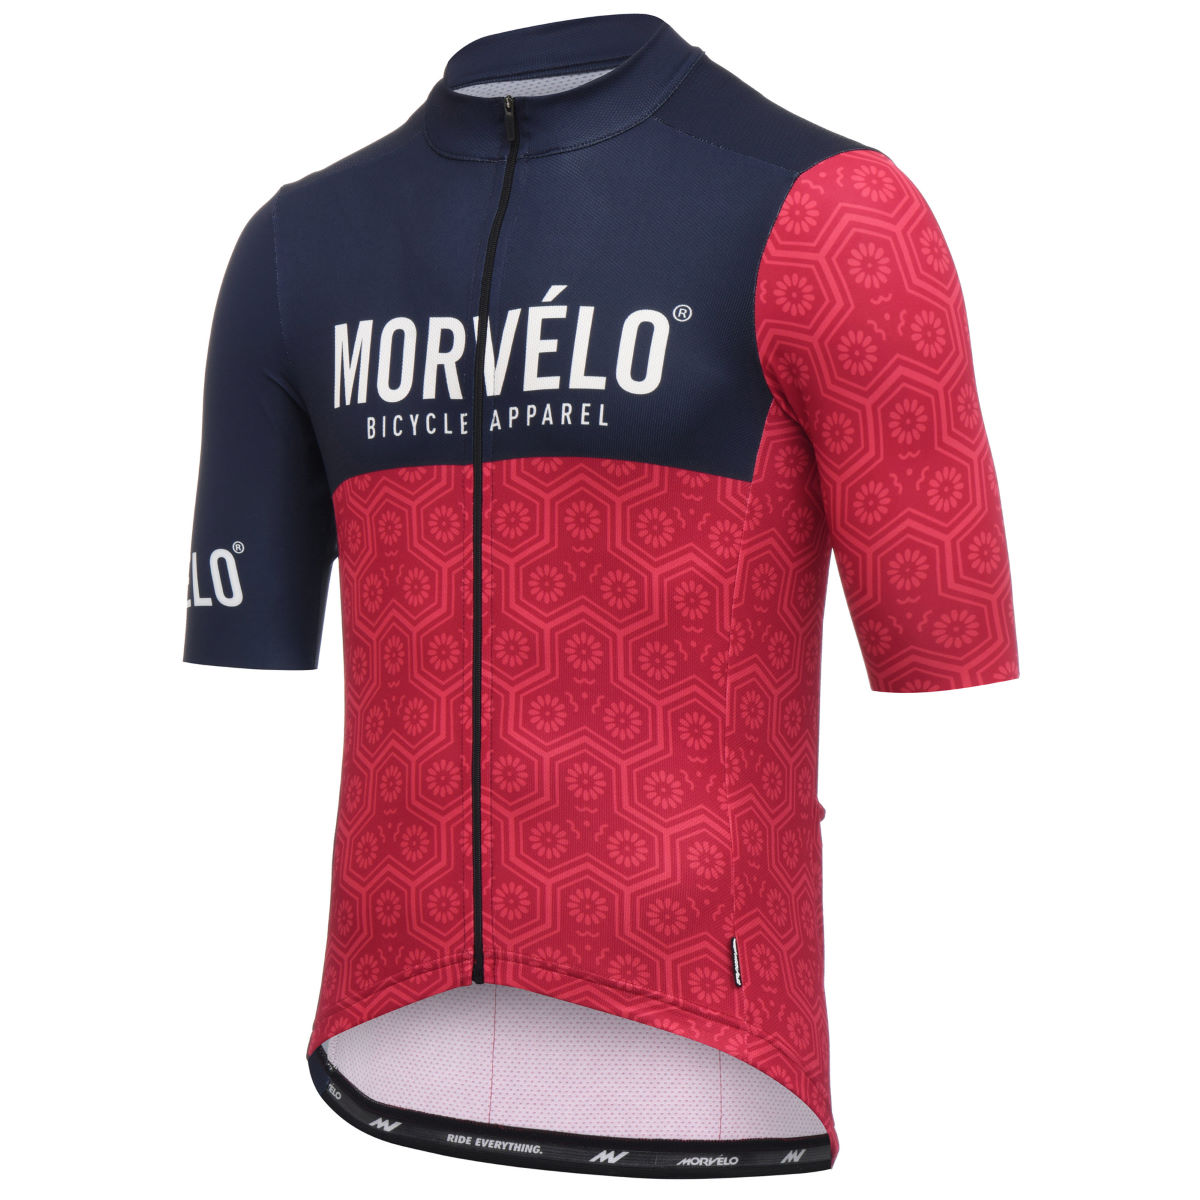 Morvelo 10 Year Celebration Jersey - Double Good - Maillots de manga corta